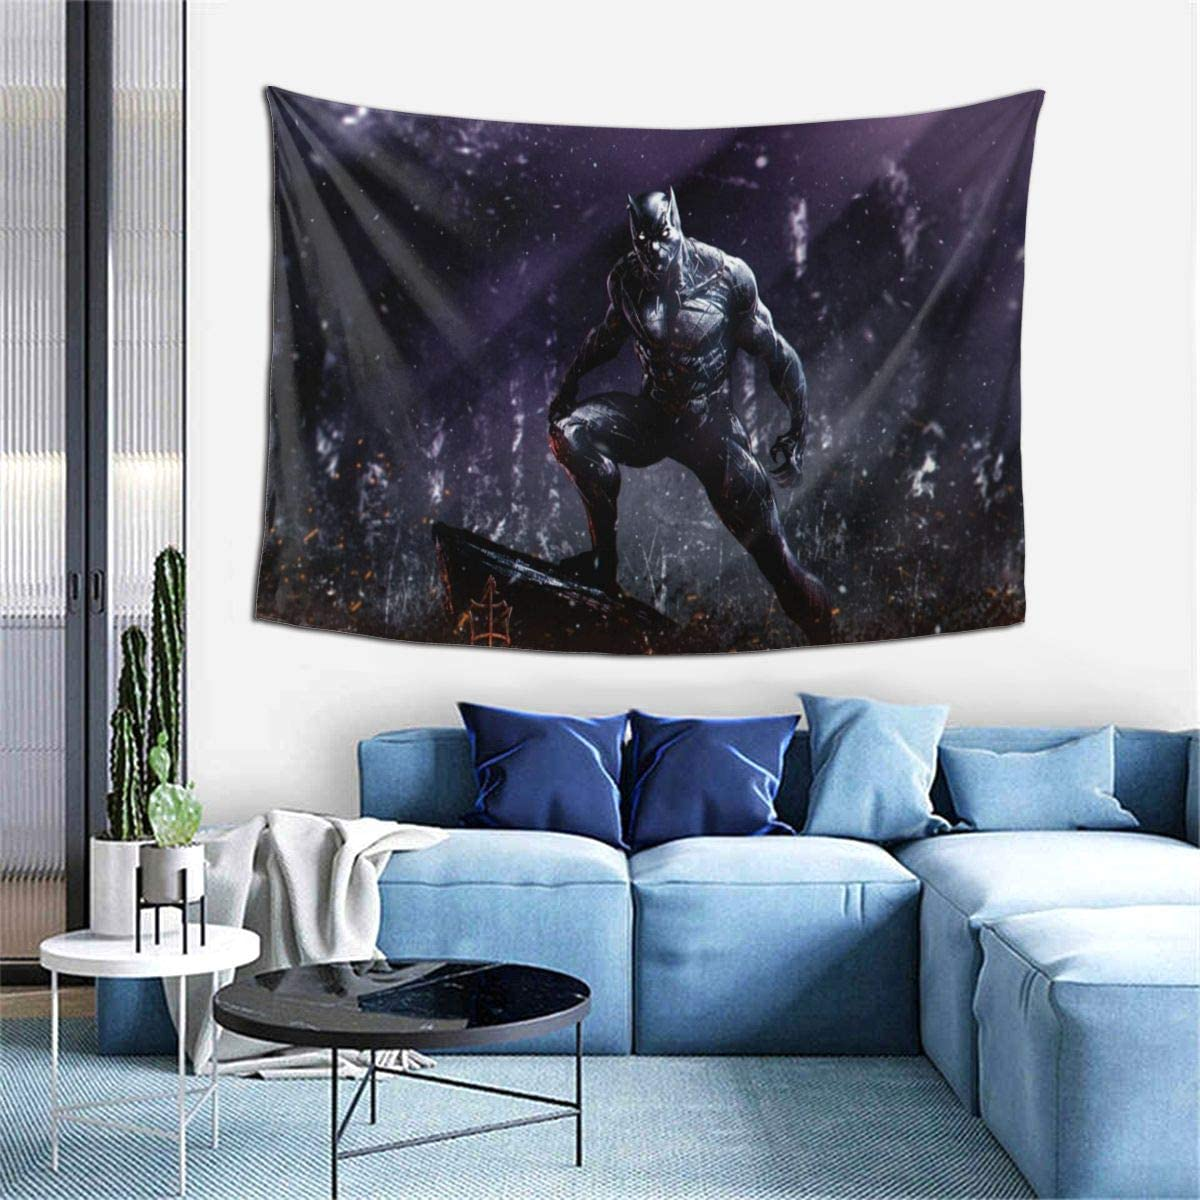 Ripepin Tapestry Black Panther Tapestry Wall Hangings Decor for Living Room and Bedroom